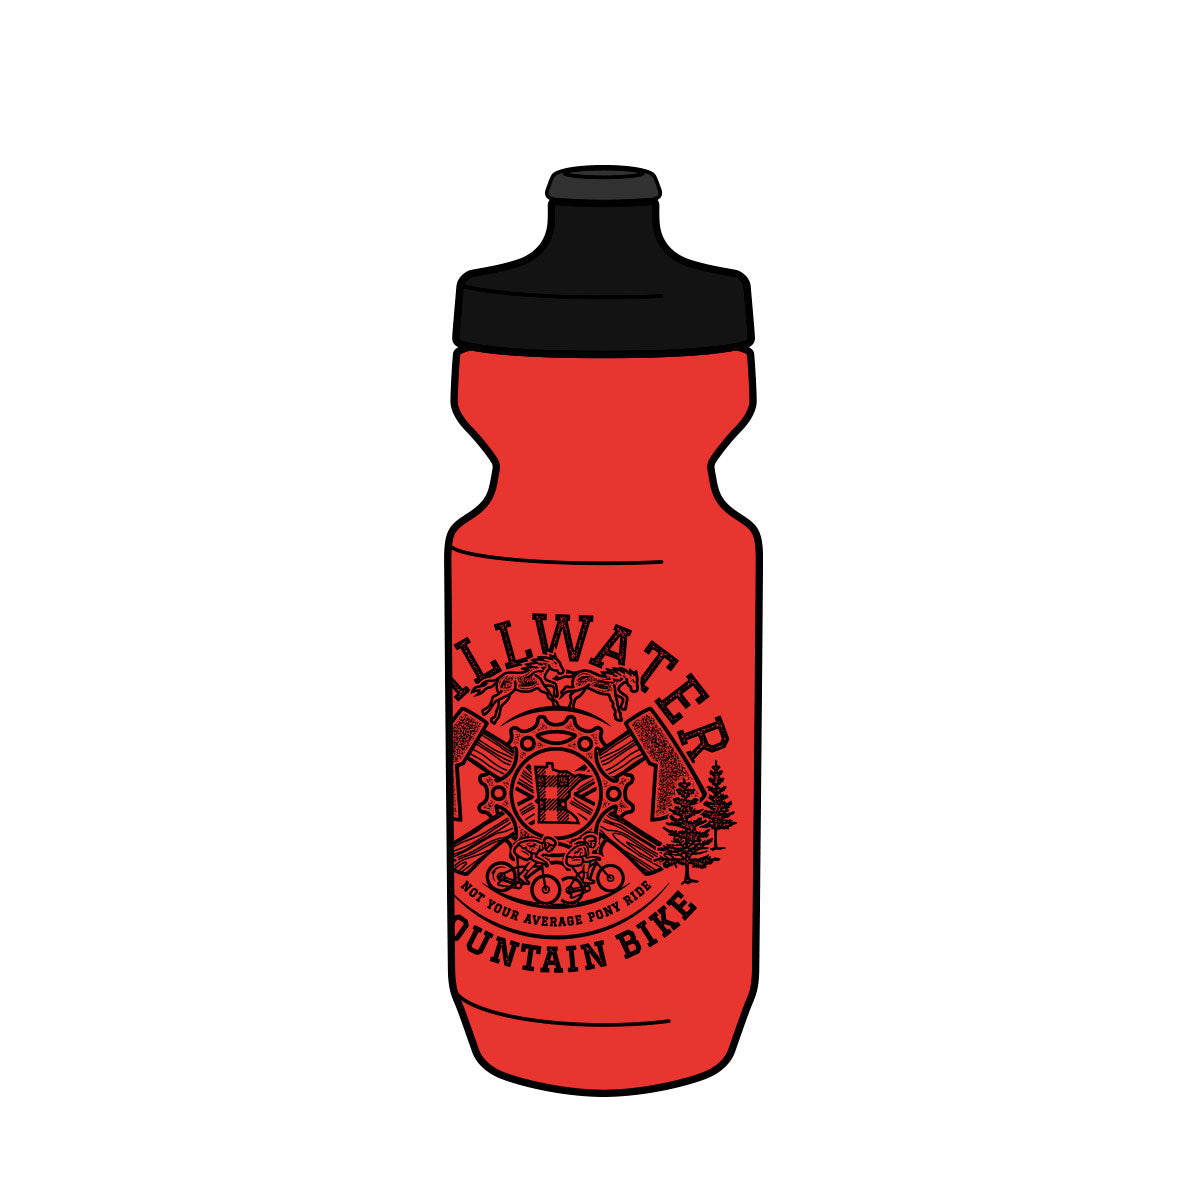 Stillwater MTB Bottle 22 oz.